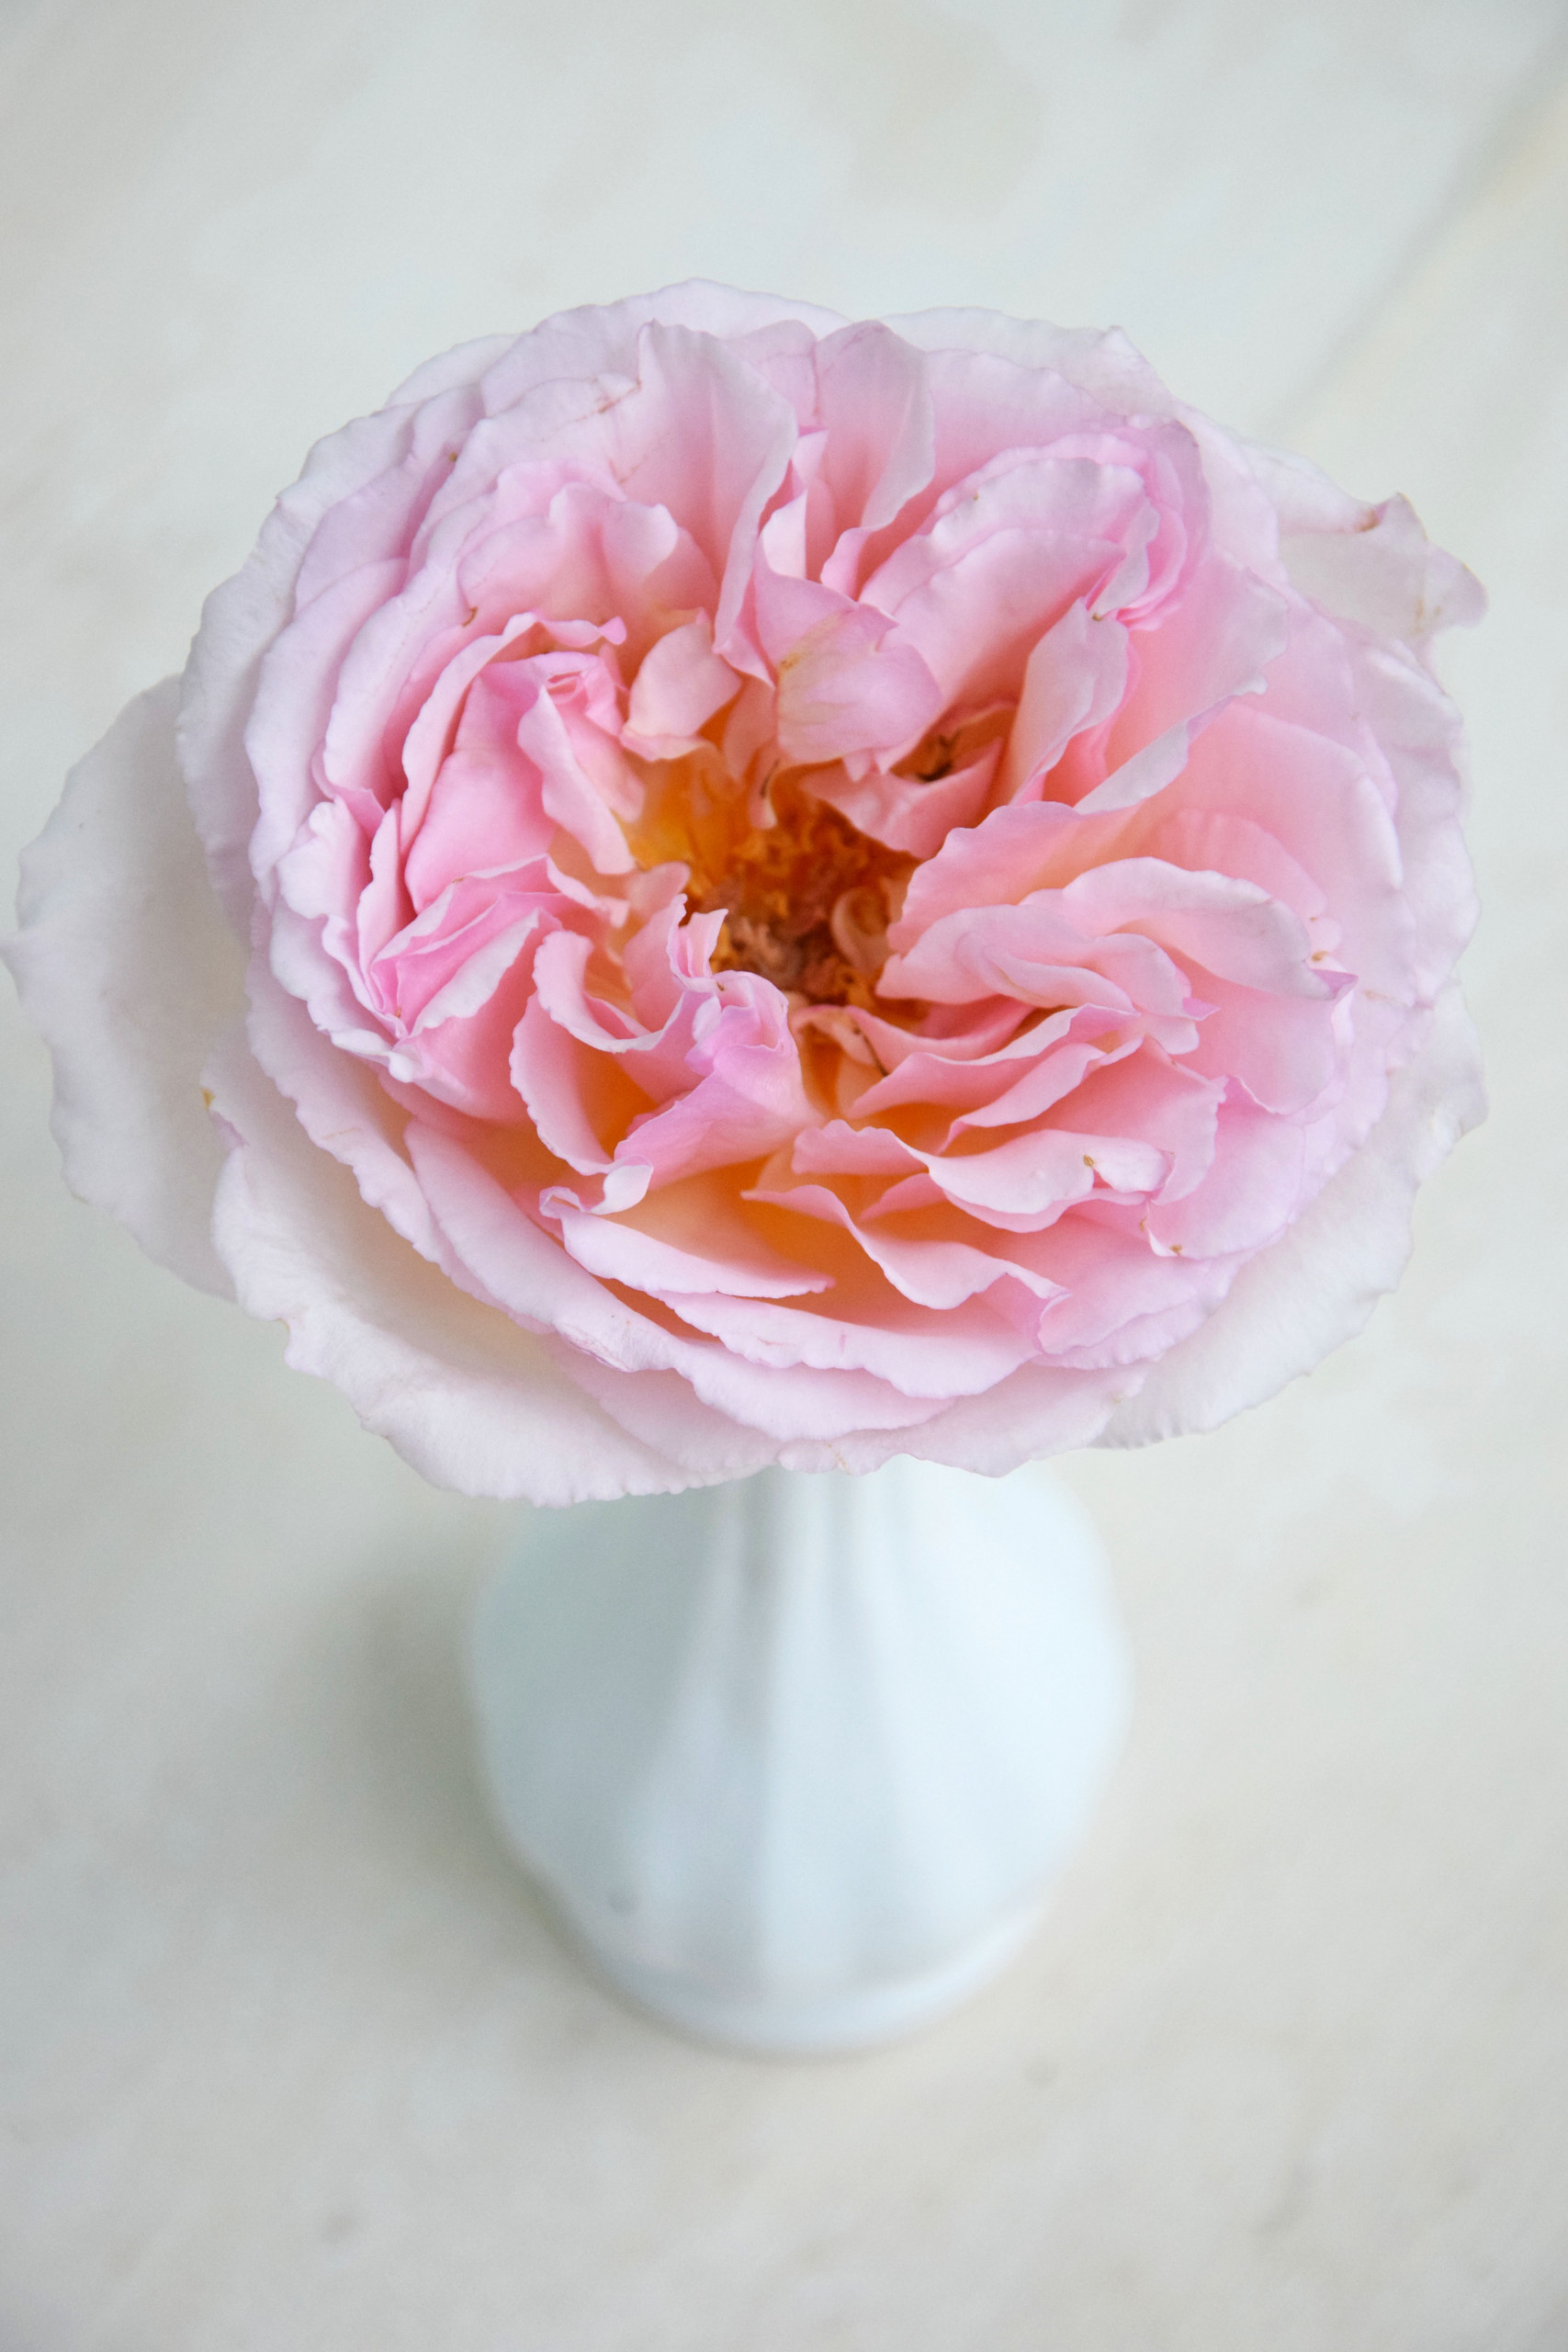 One of the most beautiful and delicious smelling roses from Meilland, 'Princesse Charlene de Monaco'.